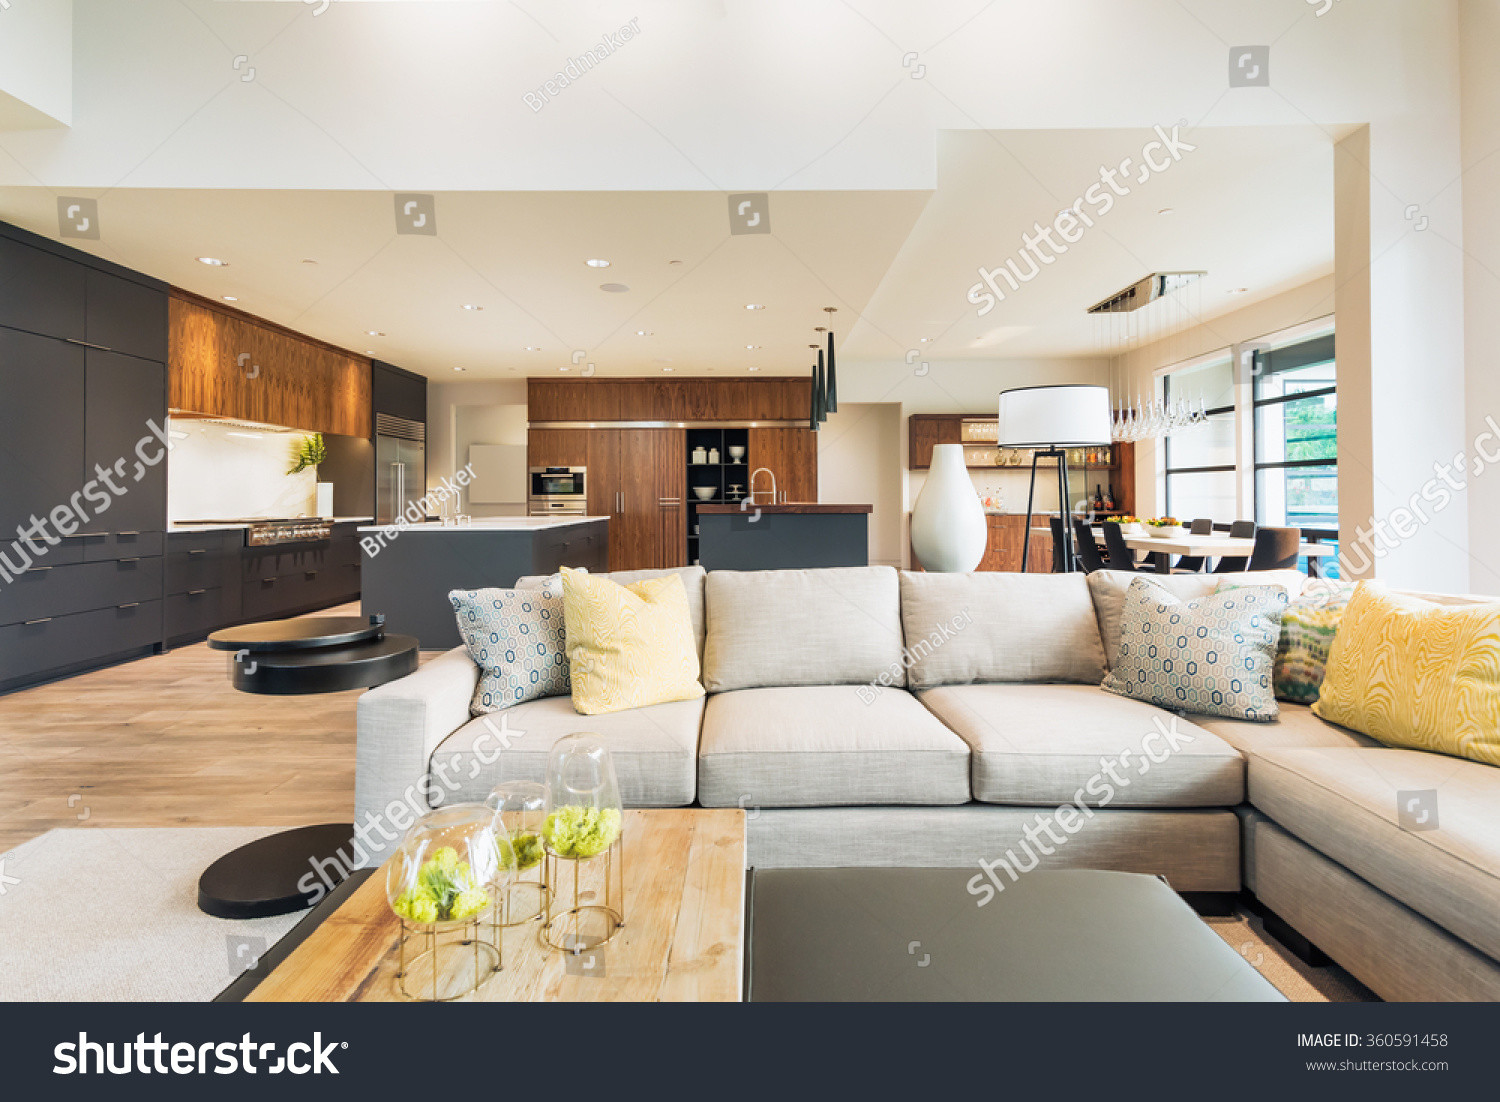 hardwood floor living room ideas of beautiful living room interior new luxury stock photo edit now for beautiful living room interior in new luxury home with view of kitchen home interior with